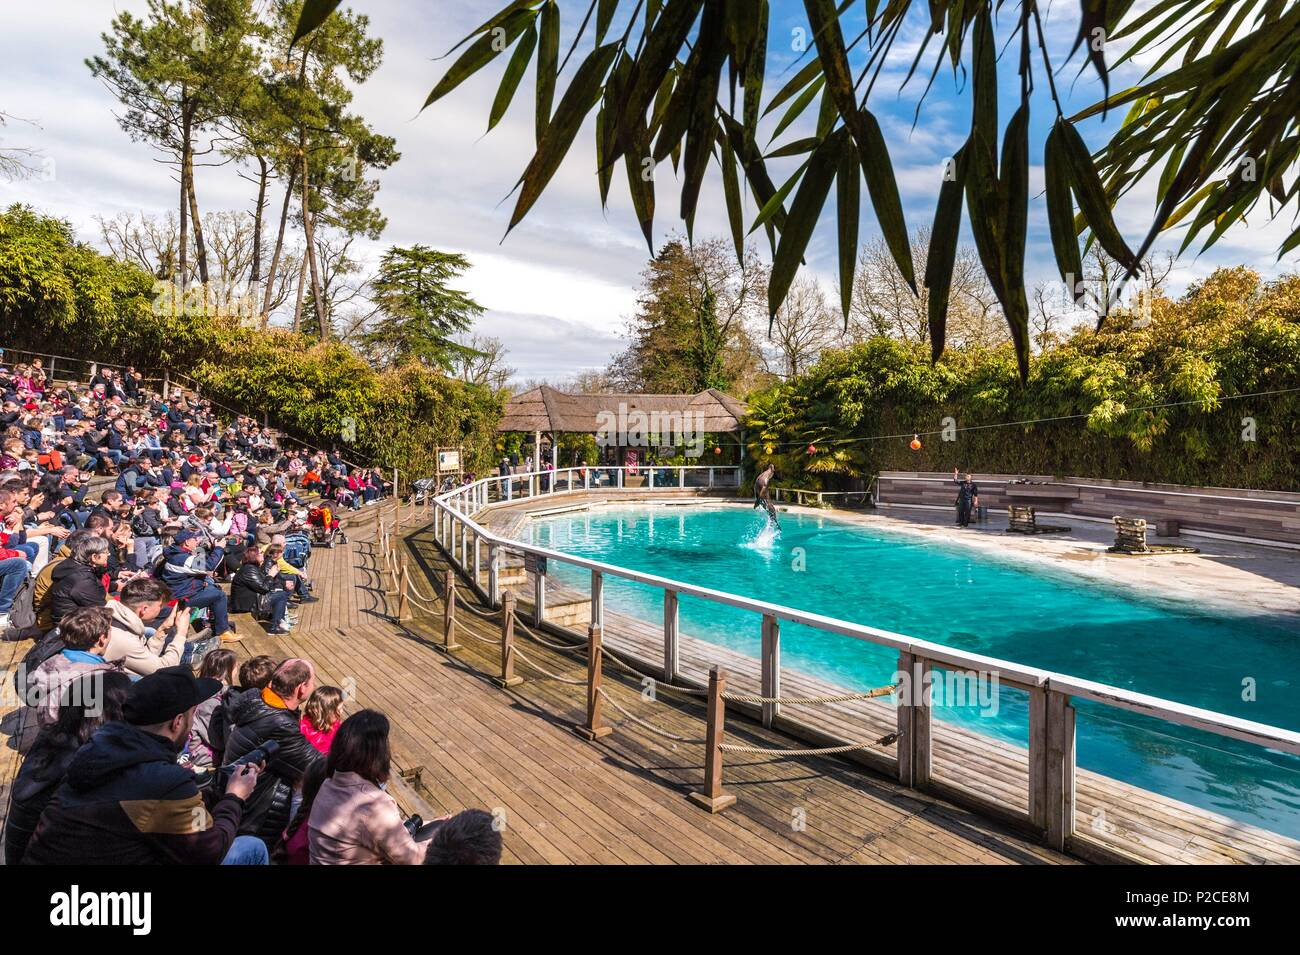 France, Sarthe, La Fleche, La Fleche Zoo, California Sea Lion (Zalophus californianus) during a show, jumping to touch a ballotection Status, Locally Protected Species, IUCN Status, Least Concern (LR-lc) - Stock Image